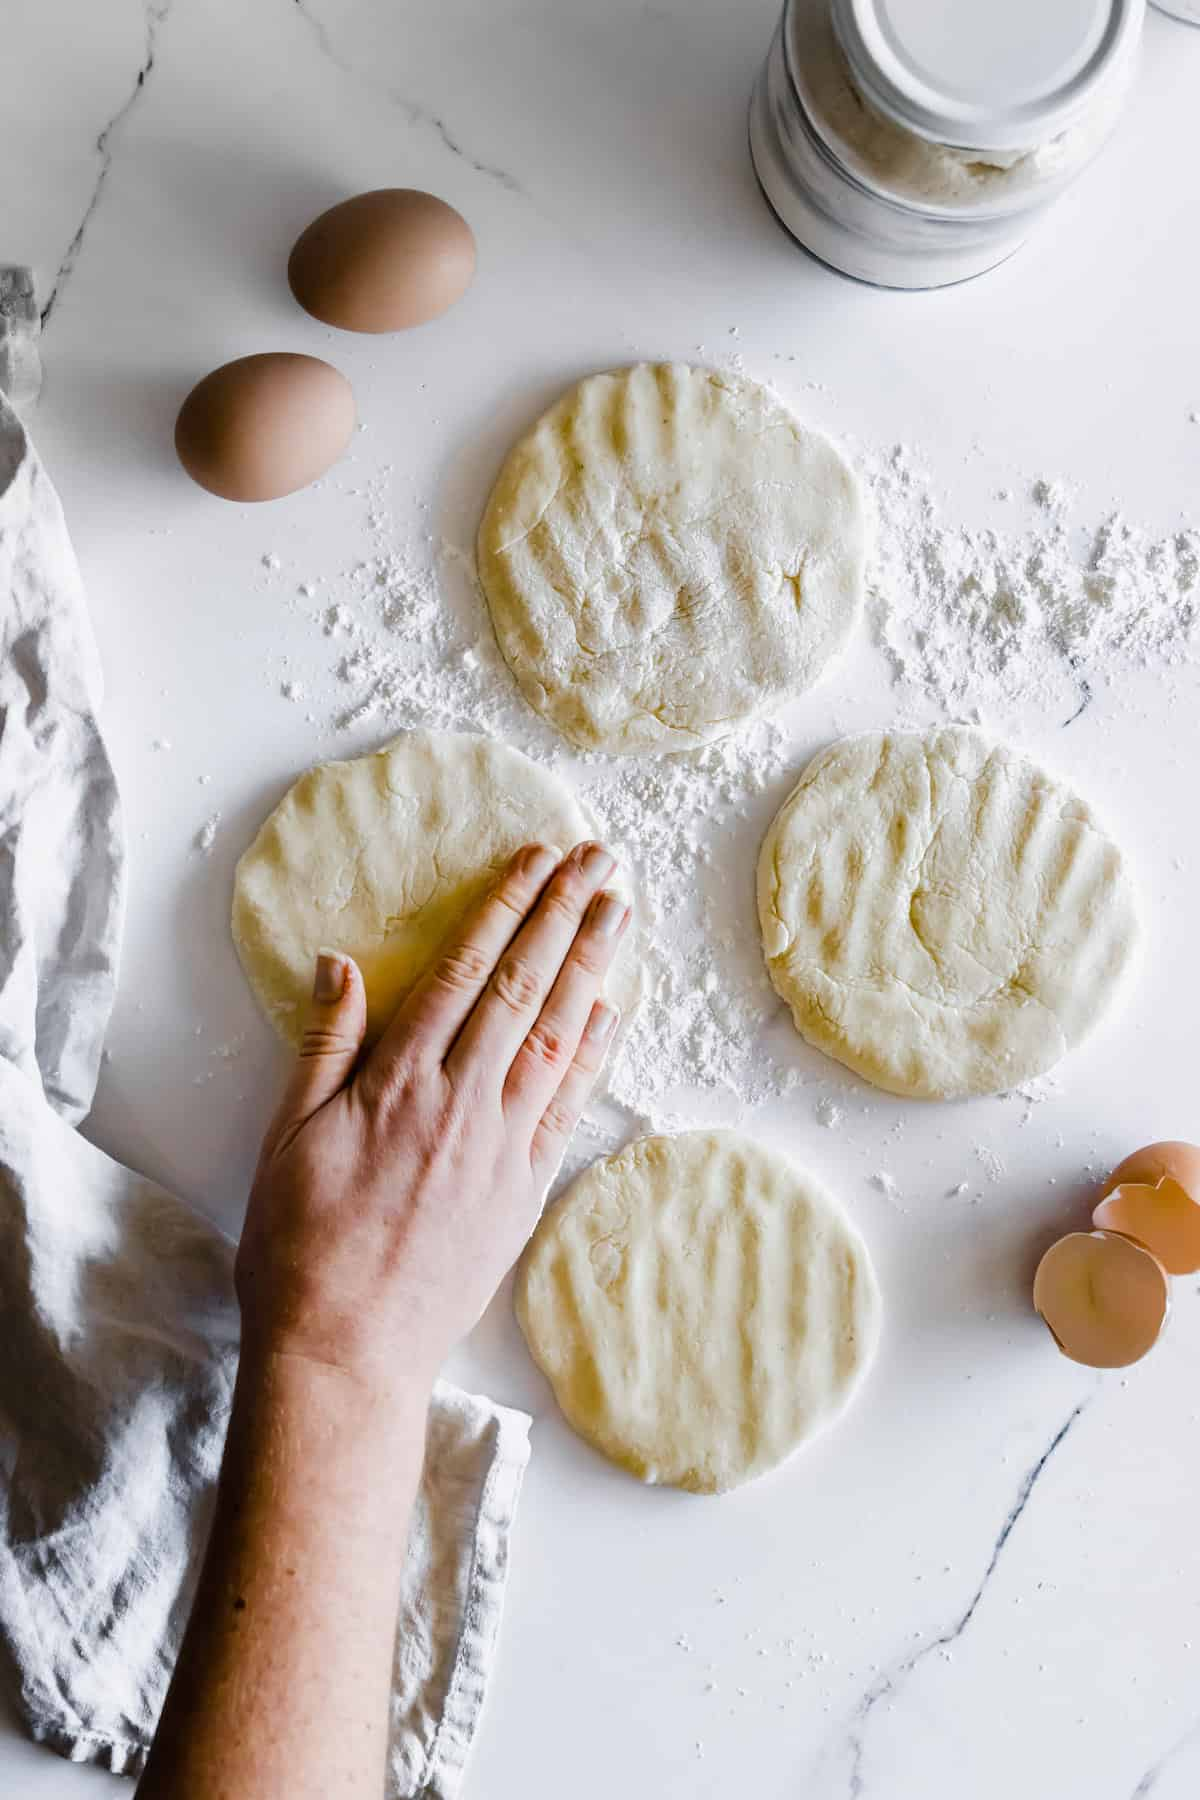 Four Discs of Gluten Free Pita Dough on a Marble Countertop with a Hand Pressing Down on One of Them